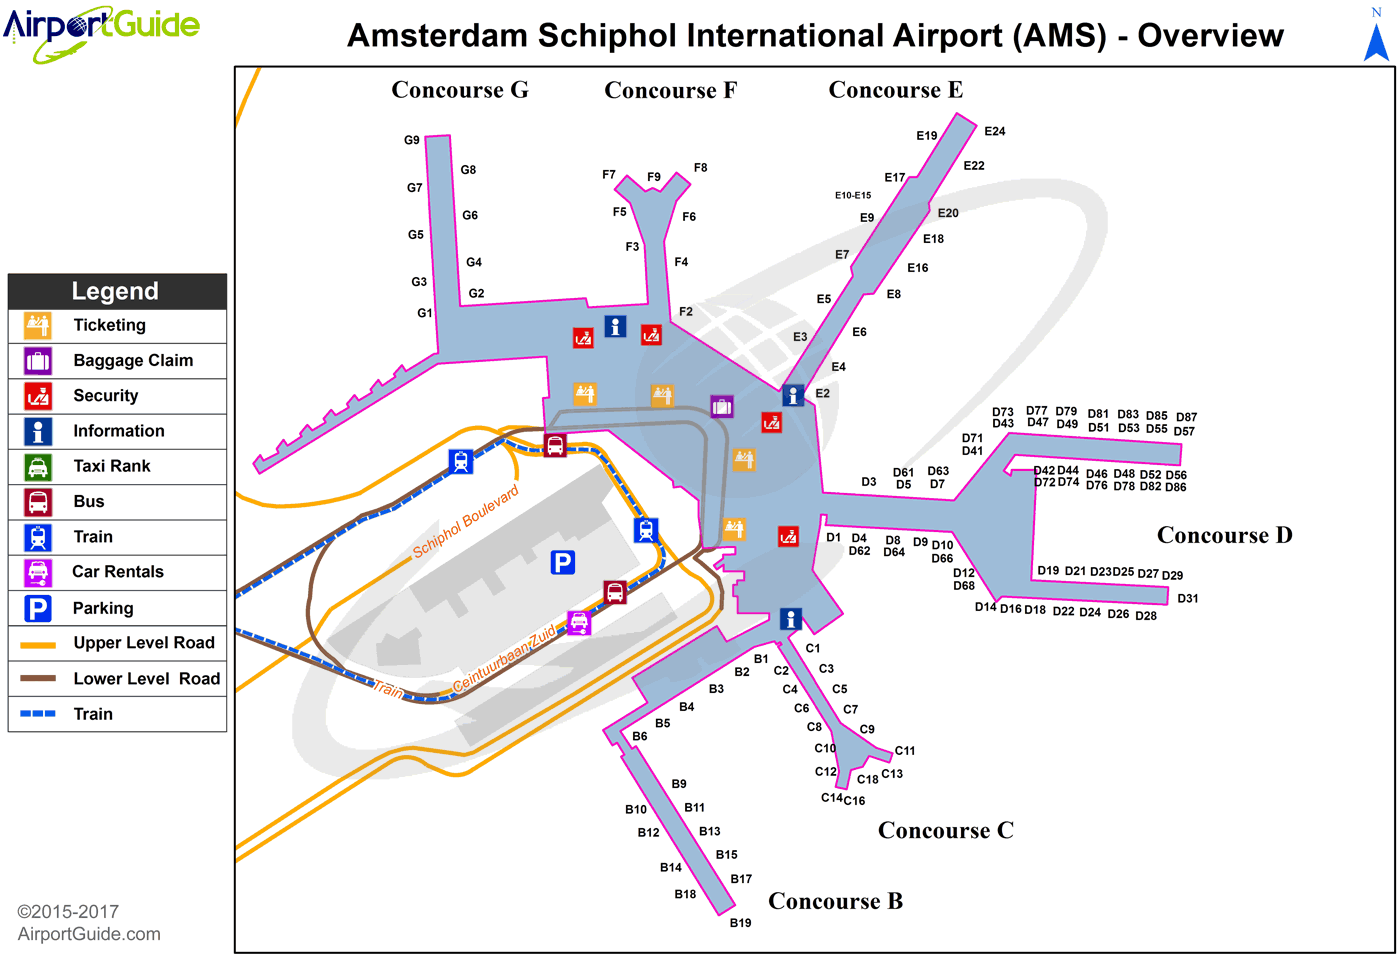 Amsterdam Amsterdam Schiphol Ams Airport Terminal Map Overview Airport Map Map Airport